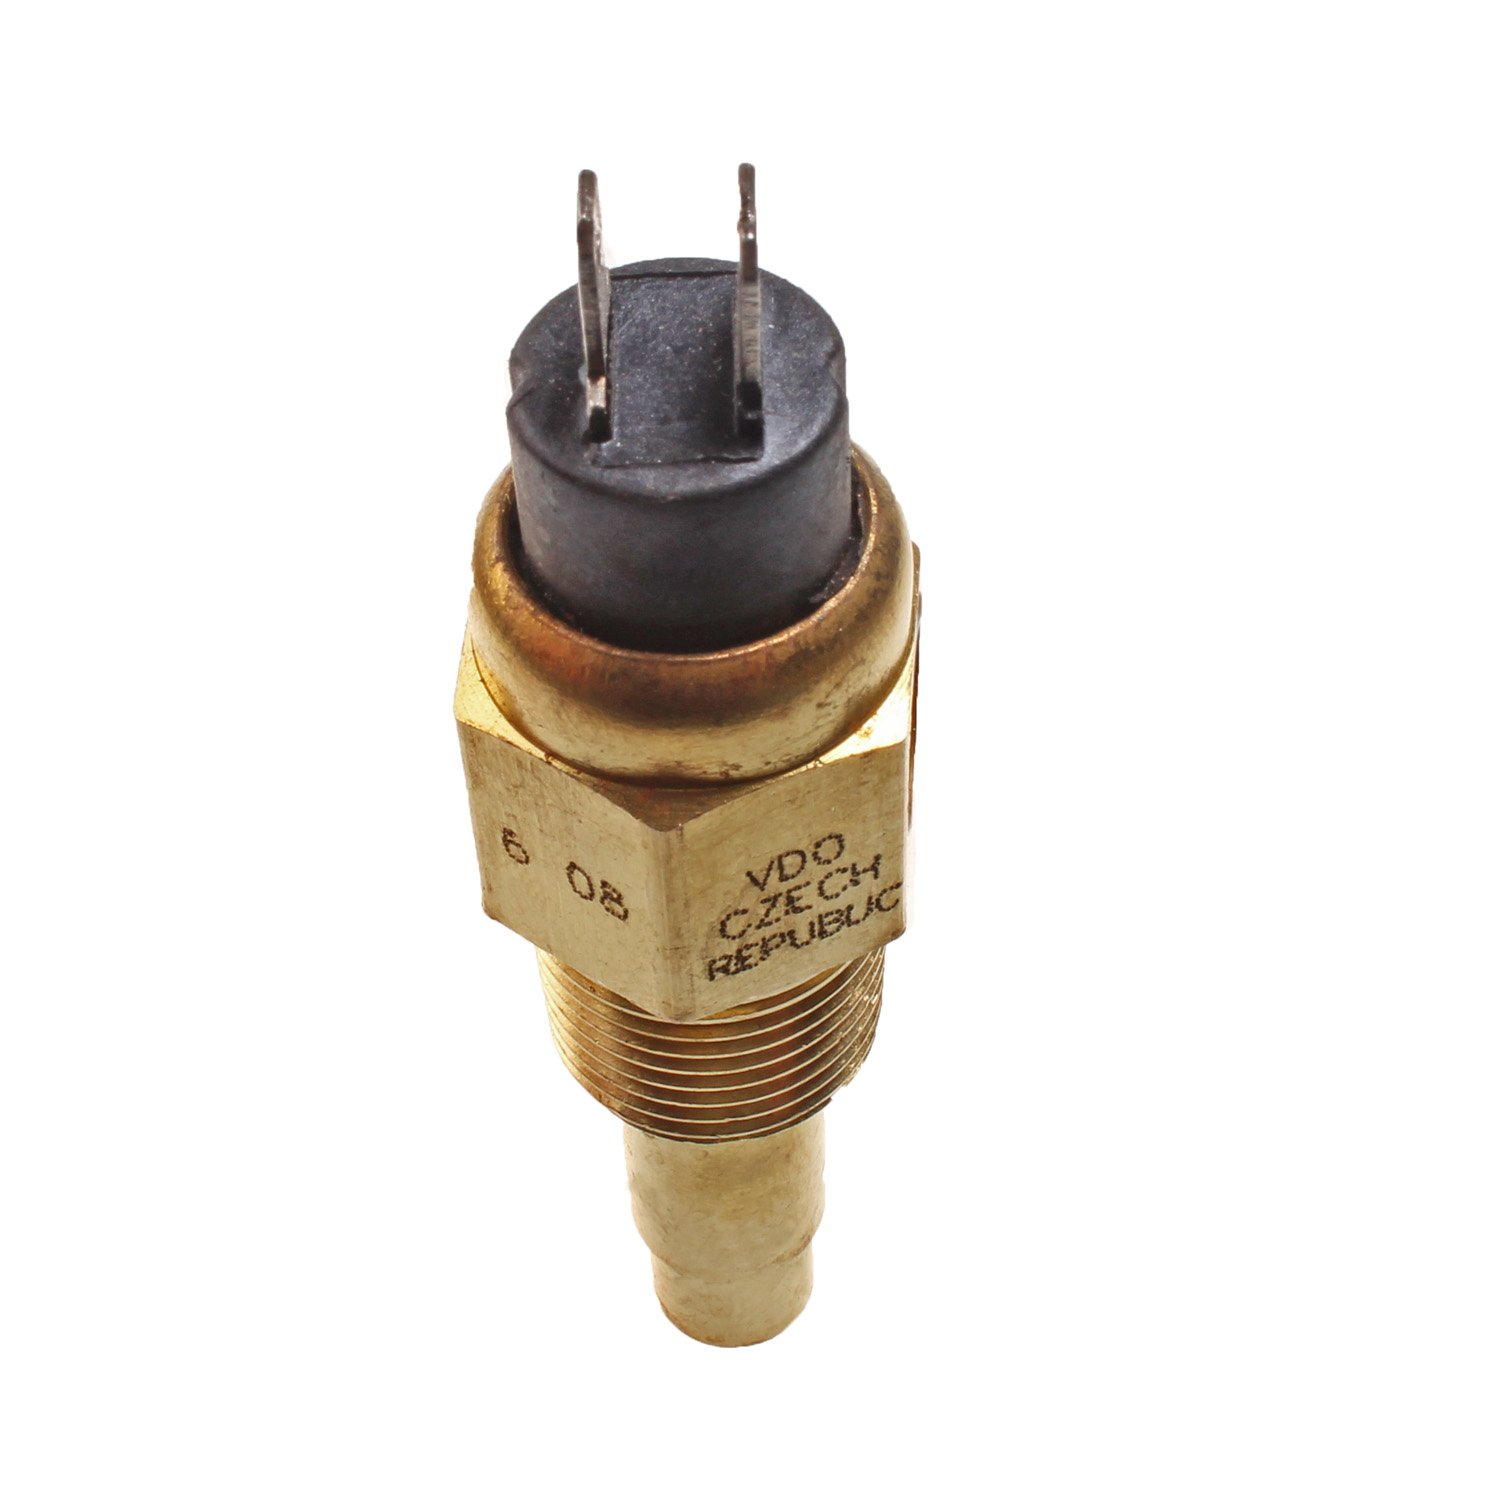 Mover Parts Water Temperature Sensor 622-337 Alarm Switch 3//8NPT 105℃ For FG Wilson Genset